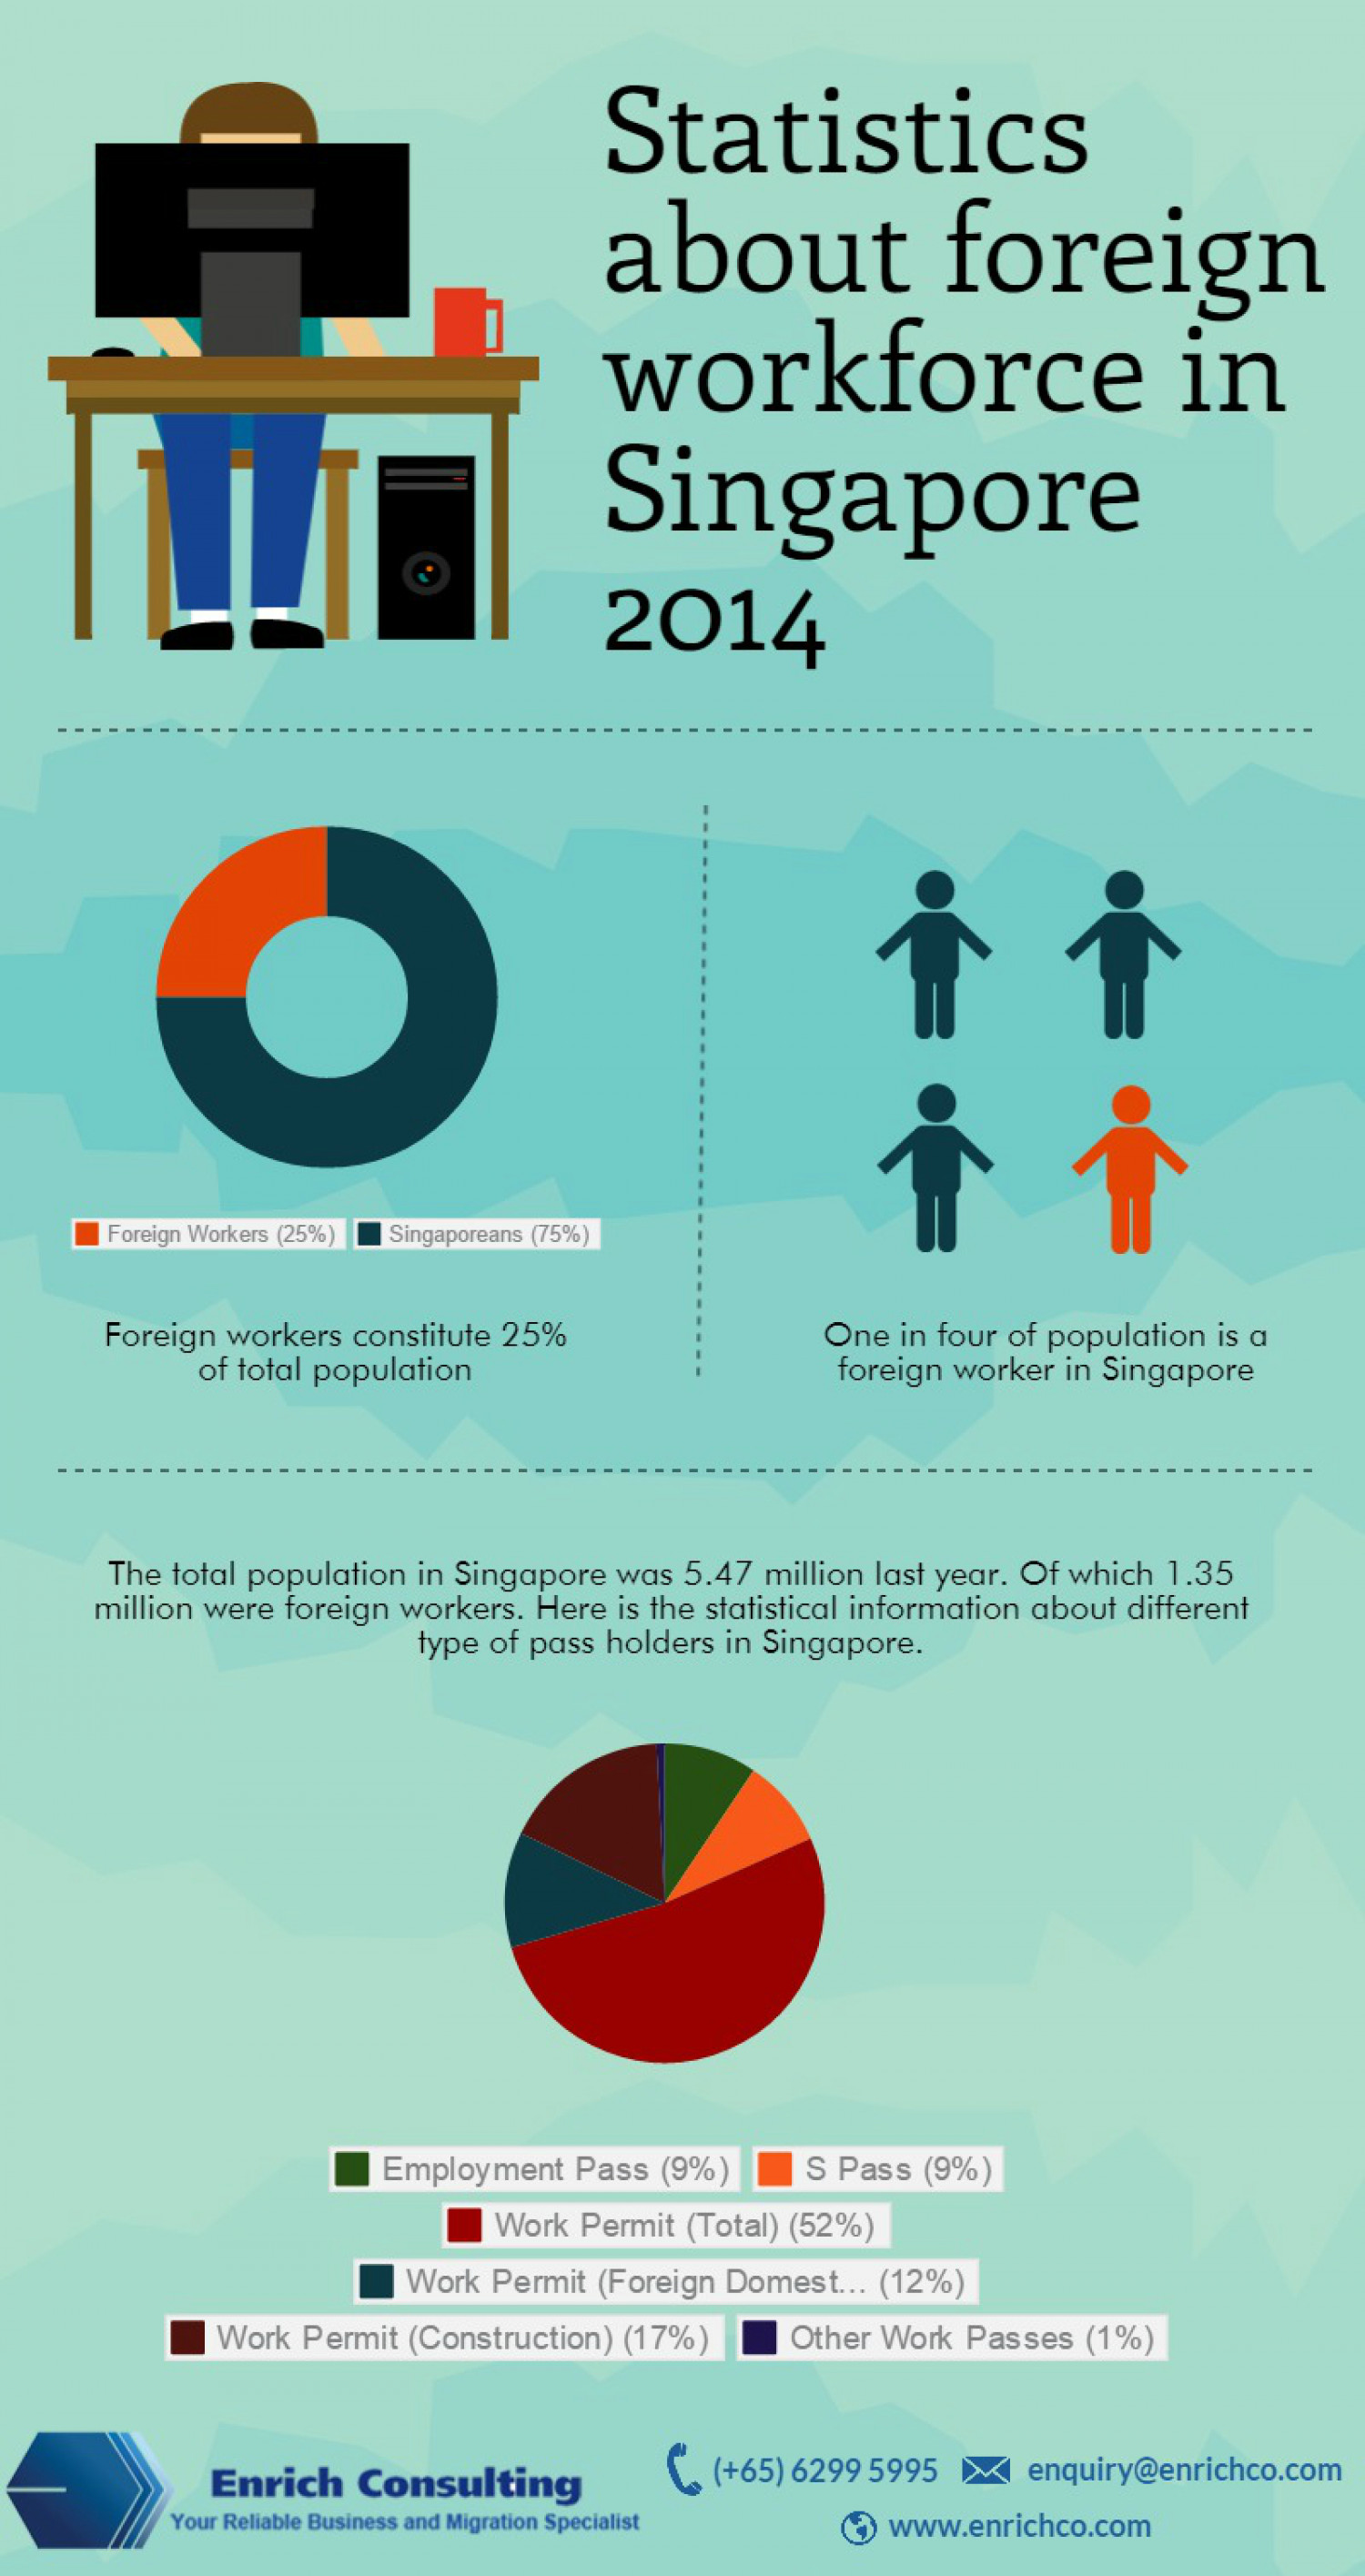 Statistics about foreign workforce in Singapore 2014 Infographic